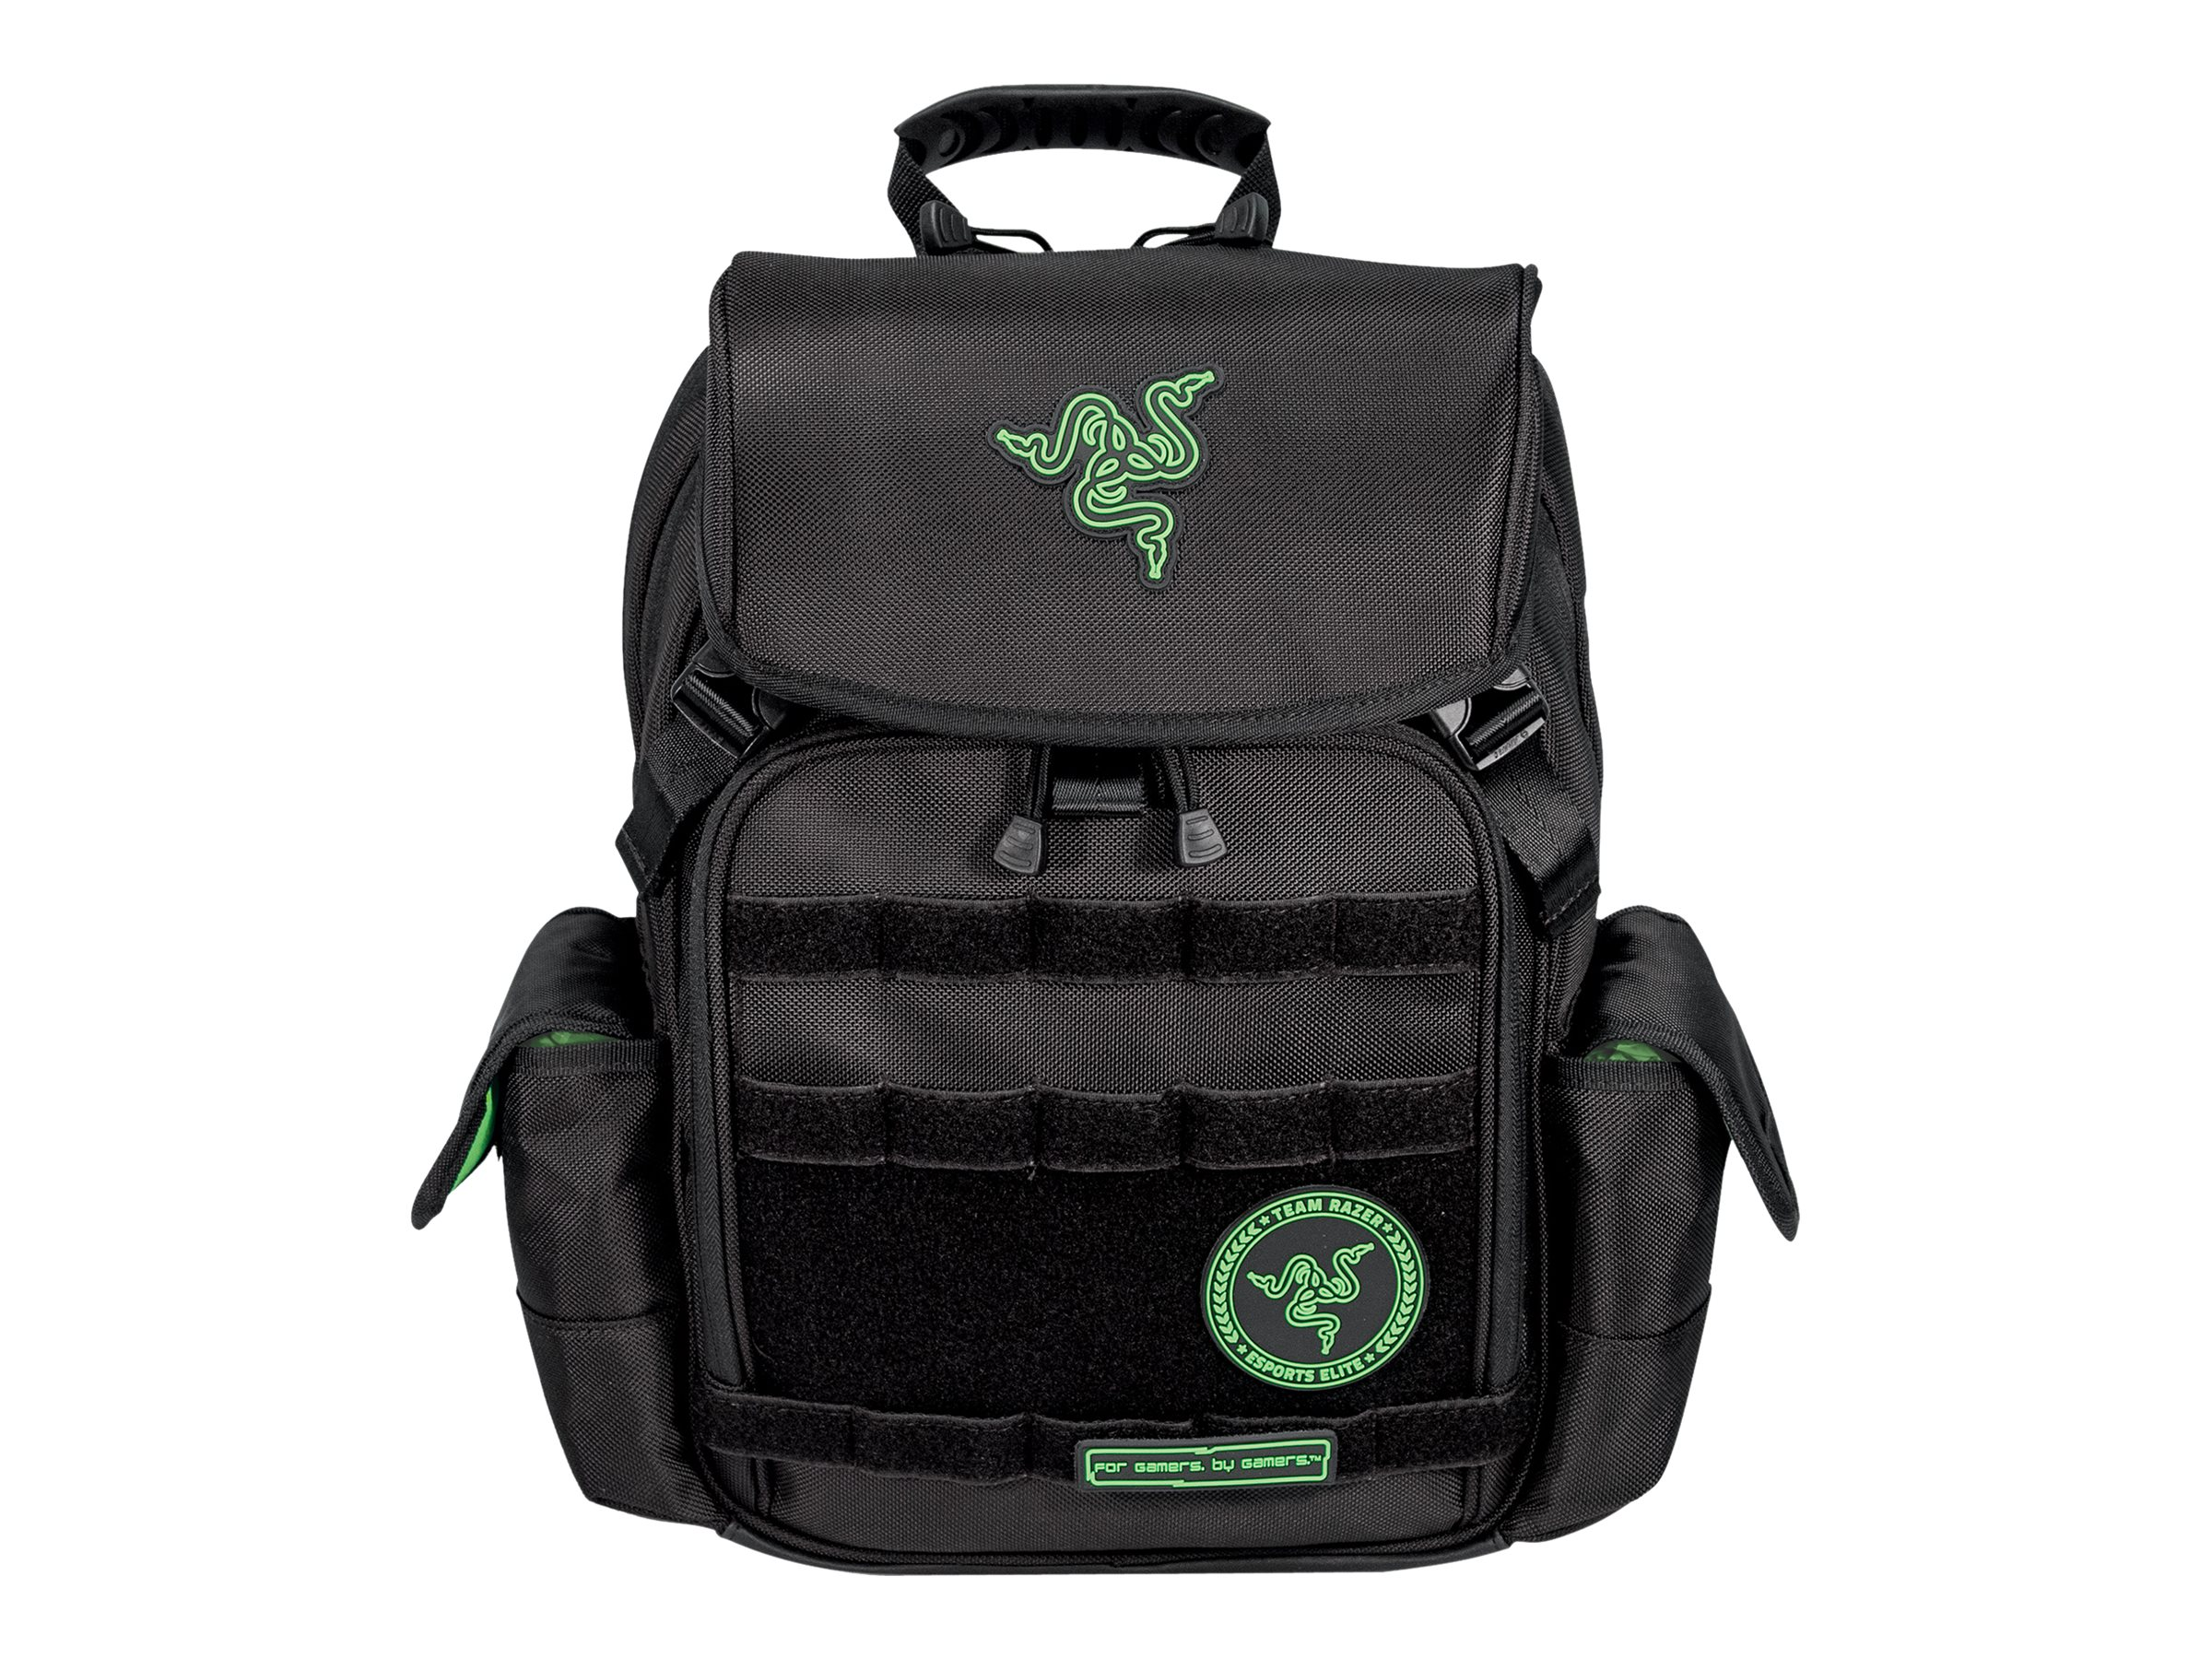 Mobile Edge Razer Tactical Backpack 15, RAZERBP15, 30988582, Carrying Cases - Other